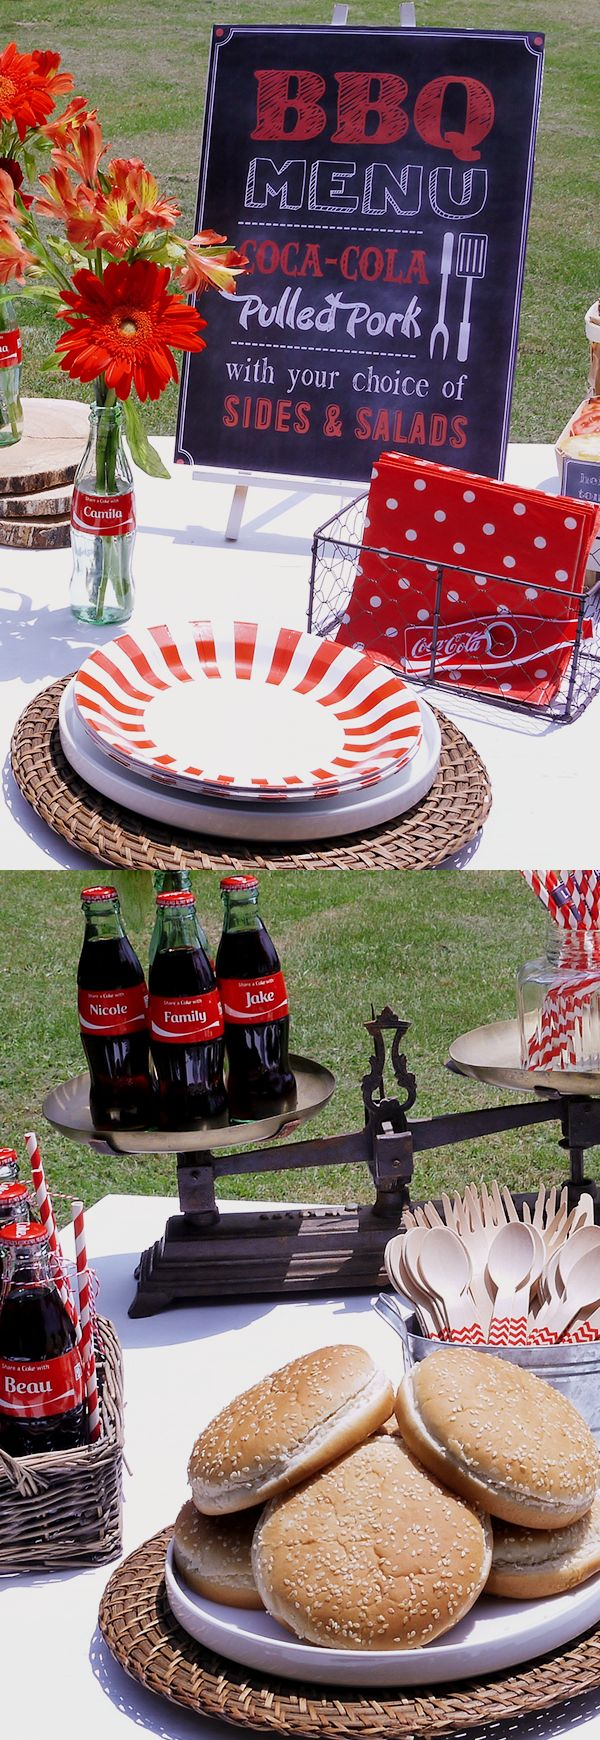 Take your tailgating party to the next level with great DIY party ideas and Coca-Cola themed decorations from our partner Cristina. Show us your epic tailgating party board by repinning this!